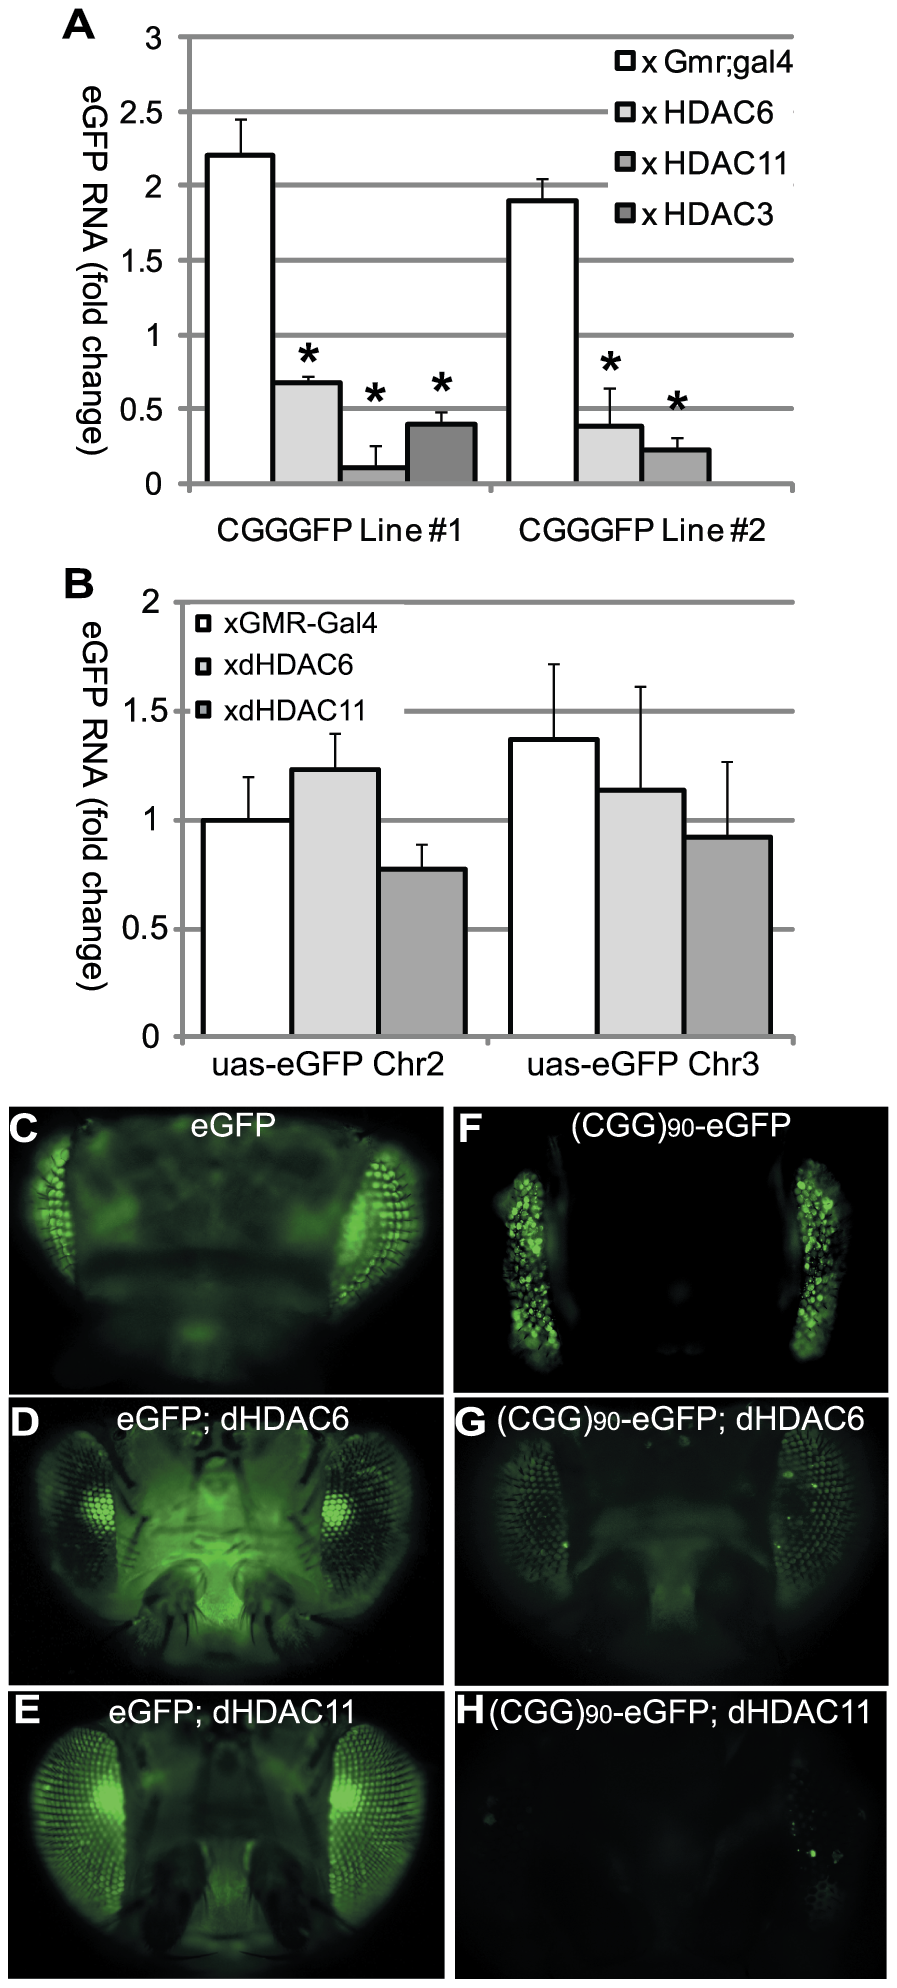 HDAC over-expression suppresses the accumulation of (CGG)<sub>90</sub>-eGFP mRNA.